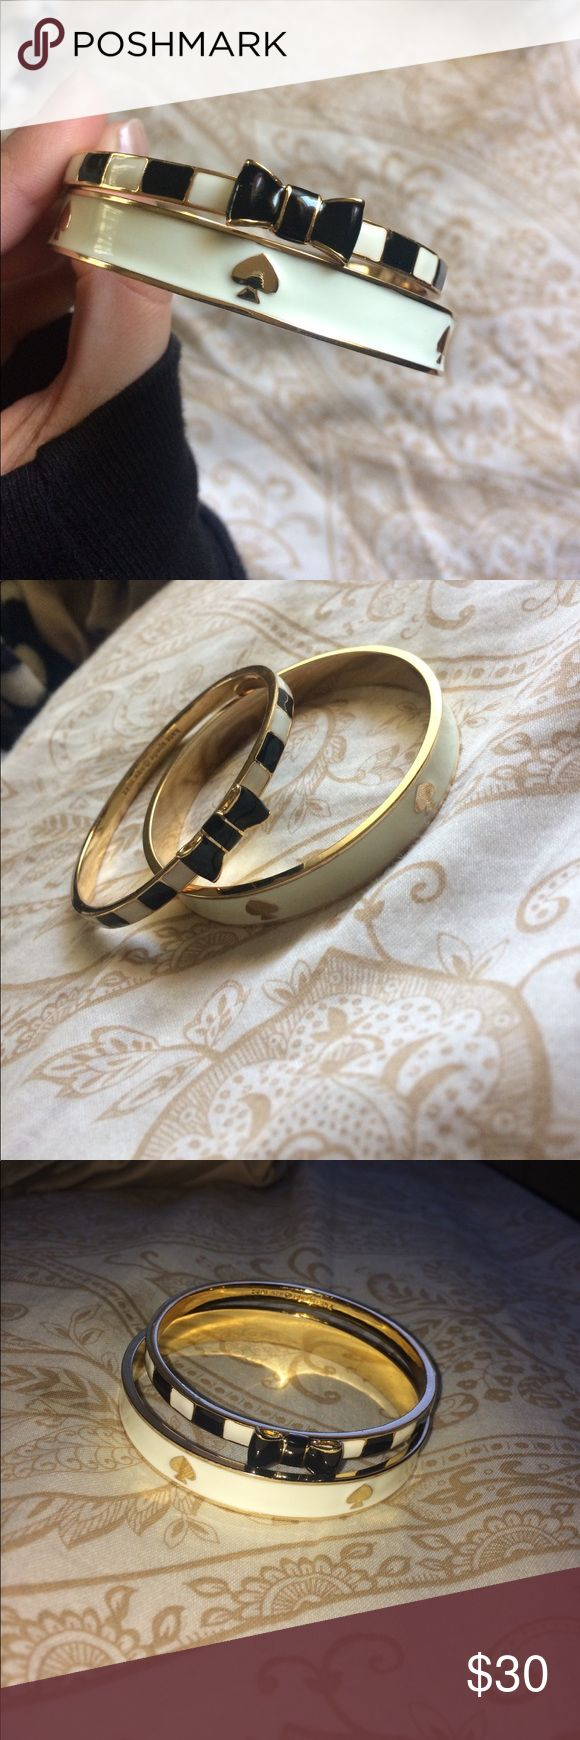 ♠️Kate spade bracelets♠️ Set of 2 Kate spade bracelets. One white with black spades and the other black and white with a bow. Both gold on the insides. Excellent condition! kate spade Jewelry Bracelets